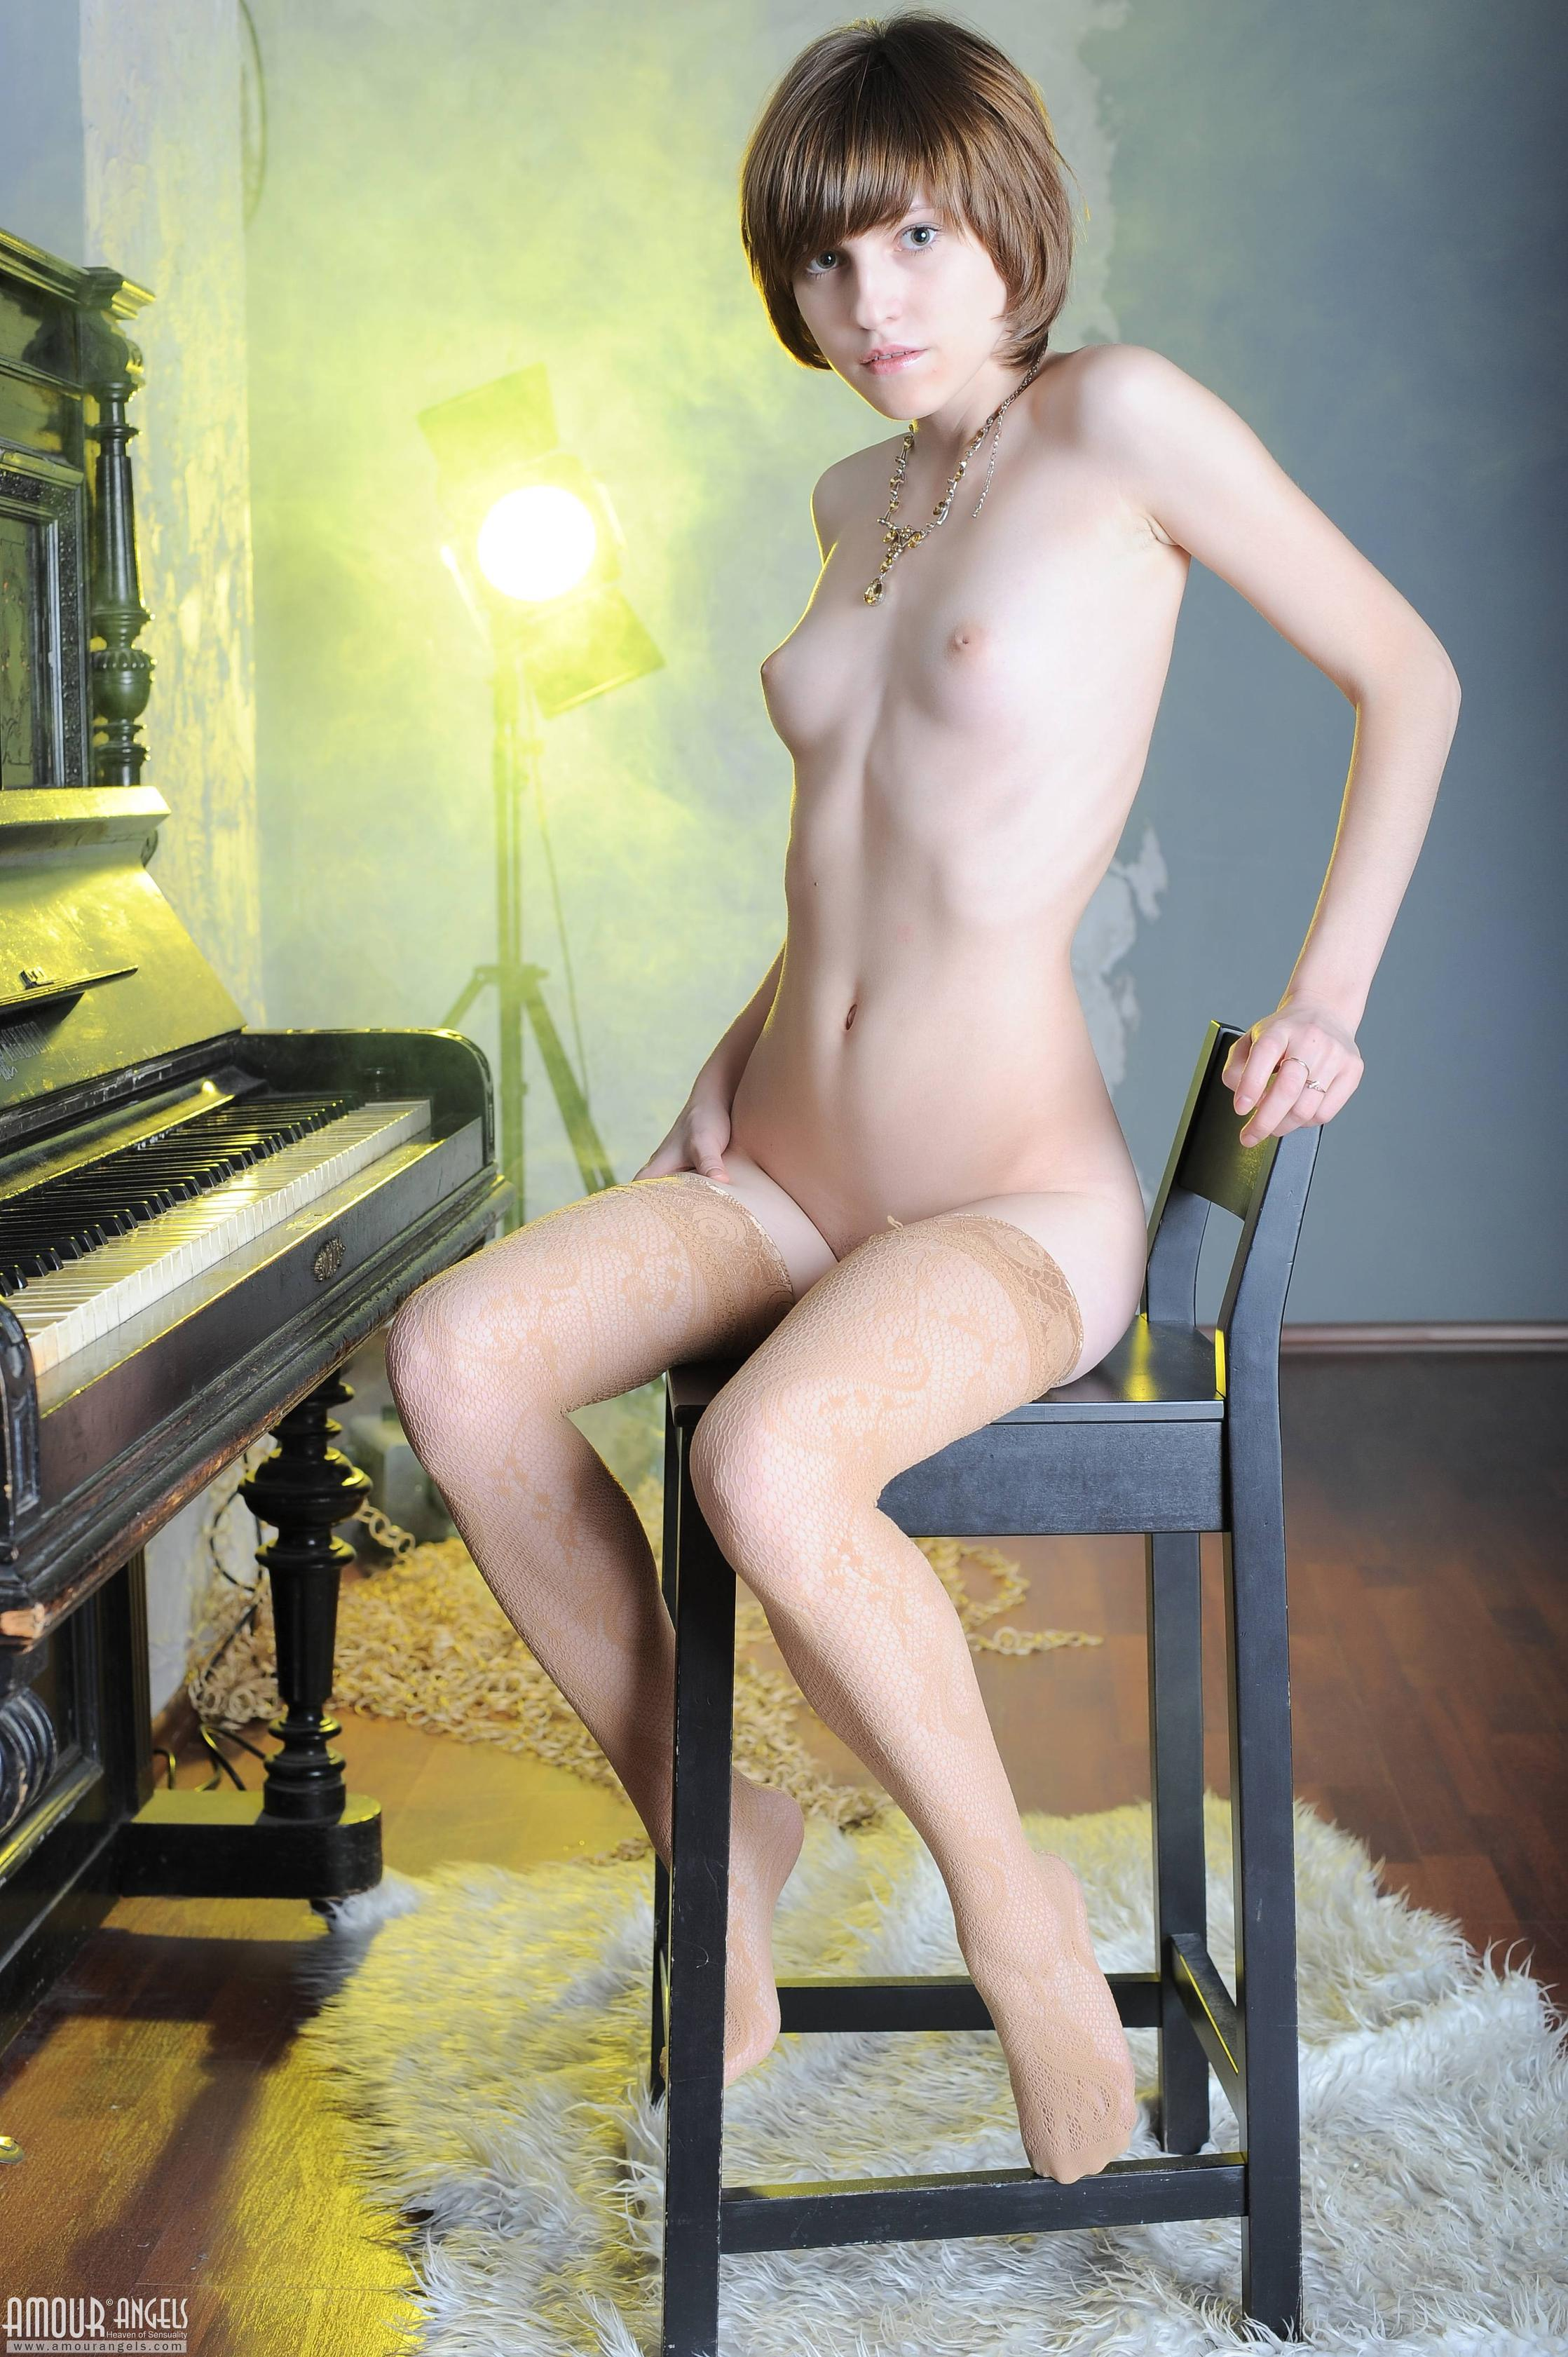 Piano asian anal where